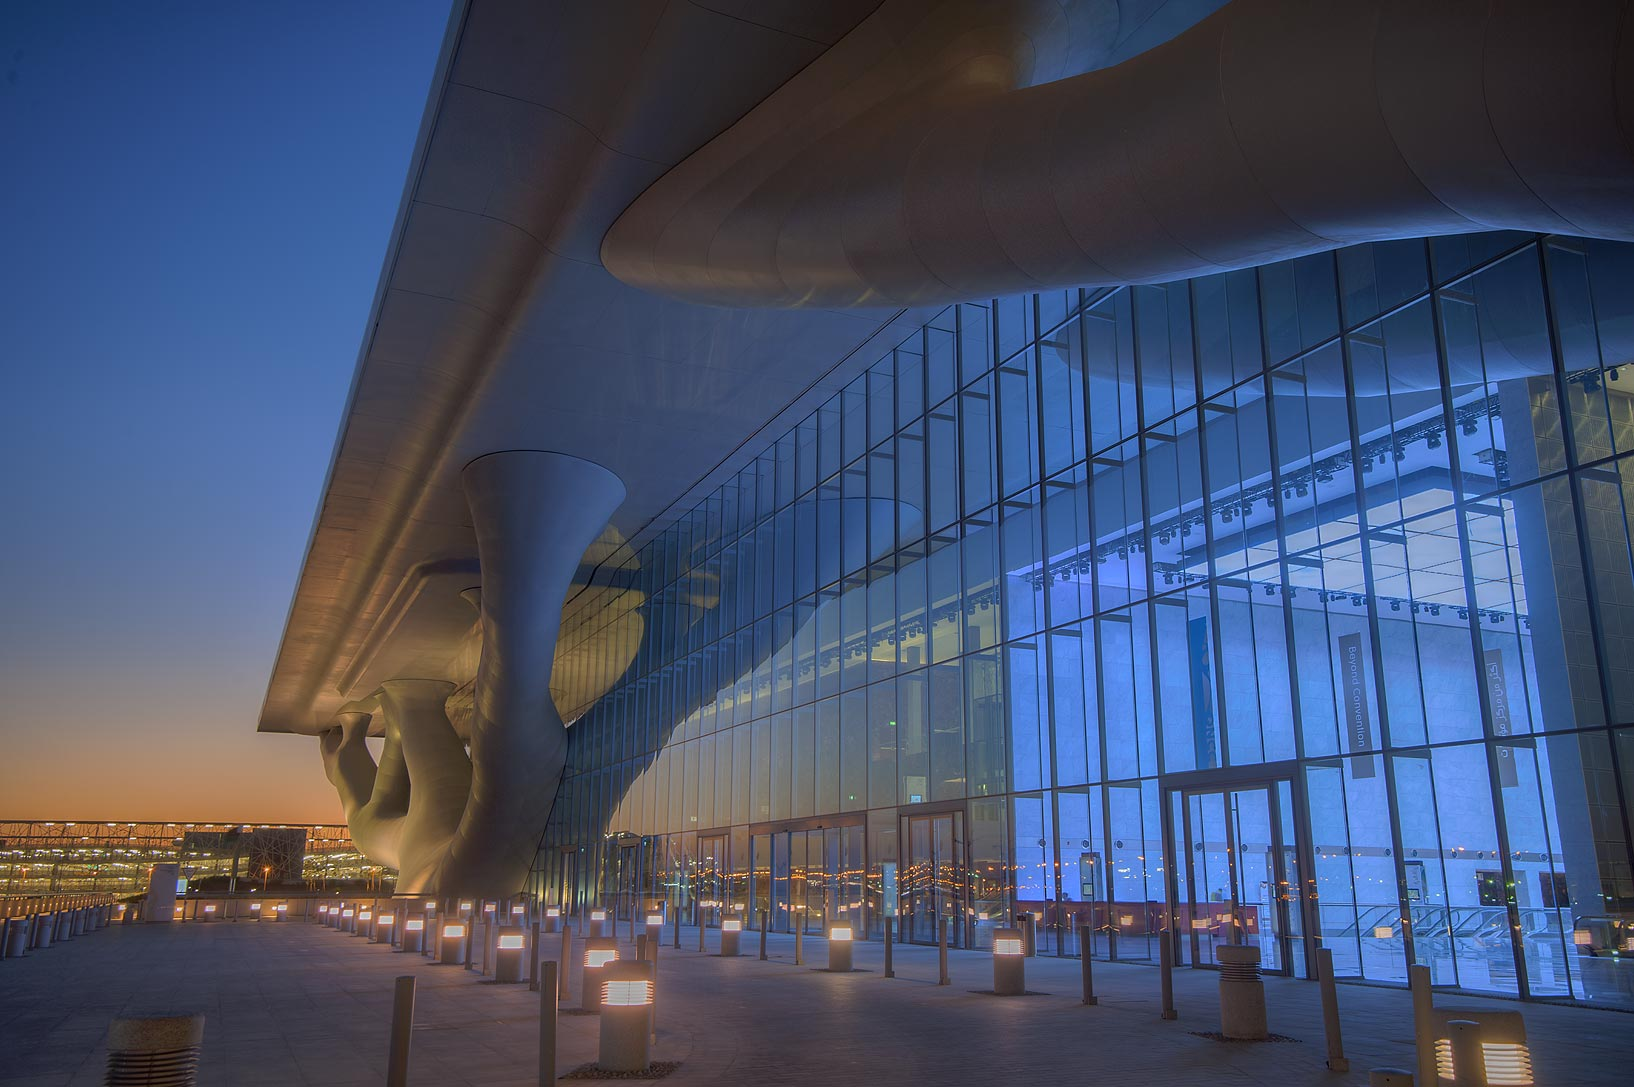 Entrance of National Convention Centre (QNCC). Doha, Qatar